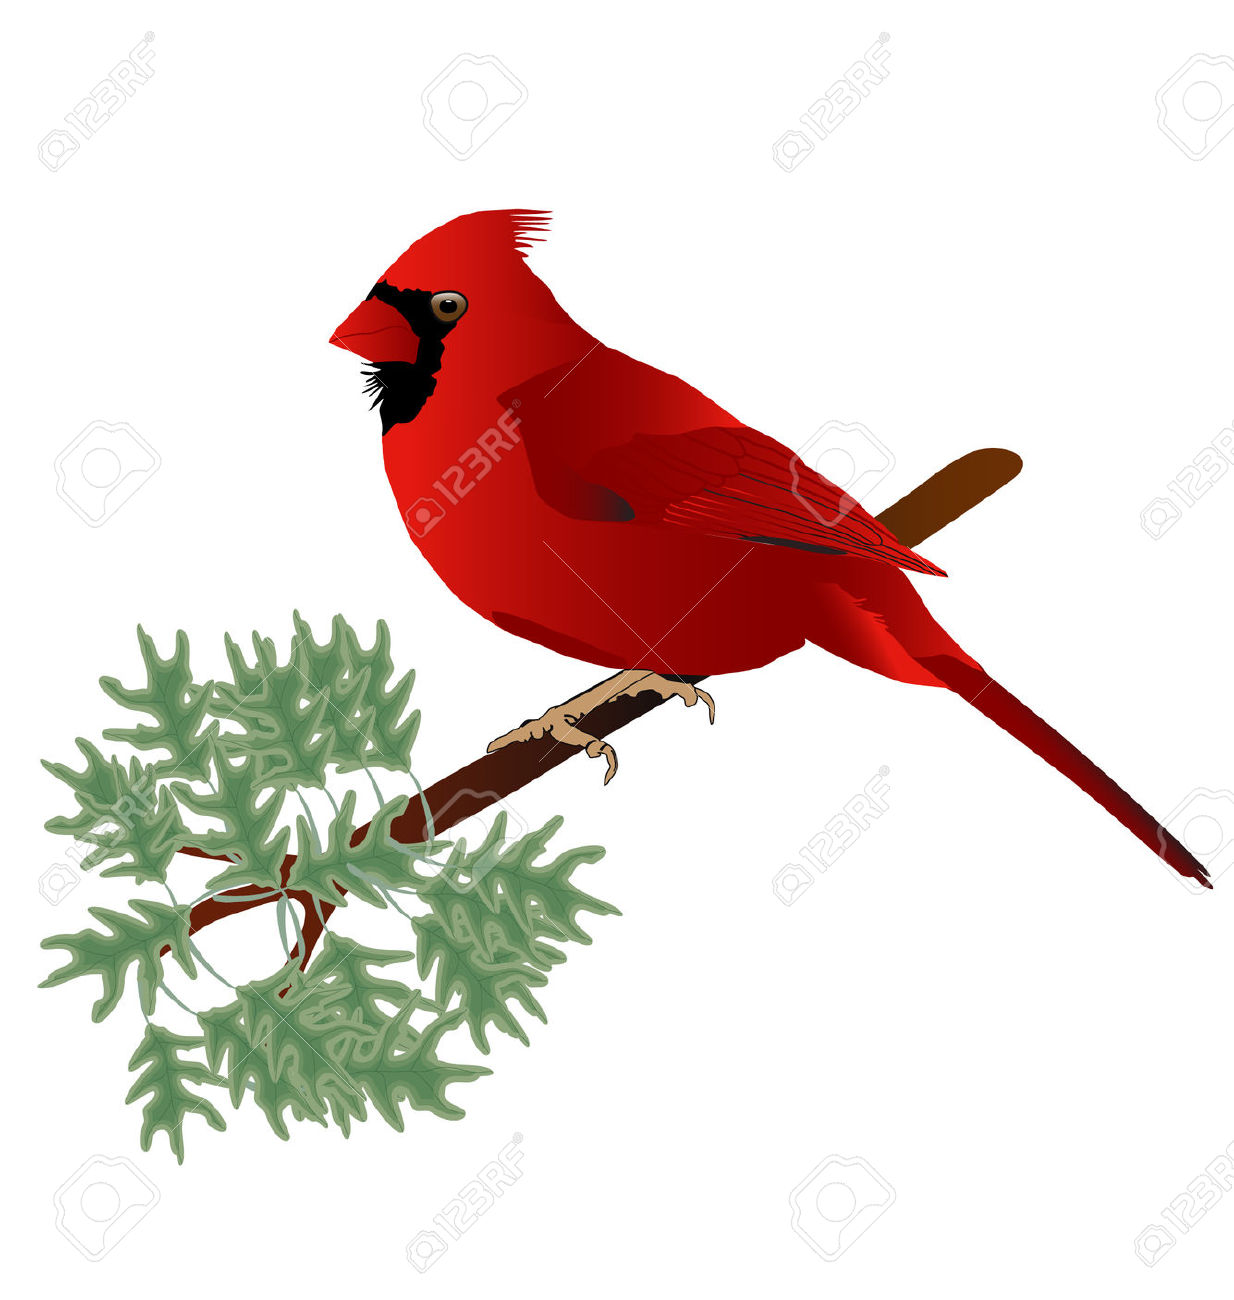 Winter clipart cardinal clipart royalty free library Winter Cardinal Clipart | Free download best Winter Cardinal ... clipart royalty free library